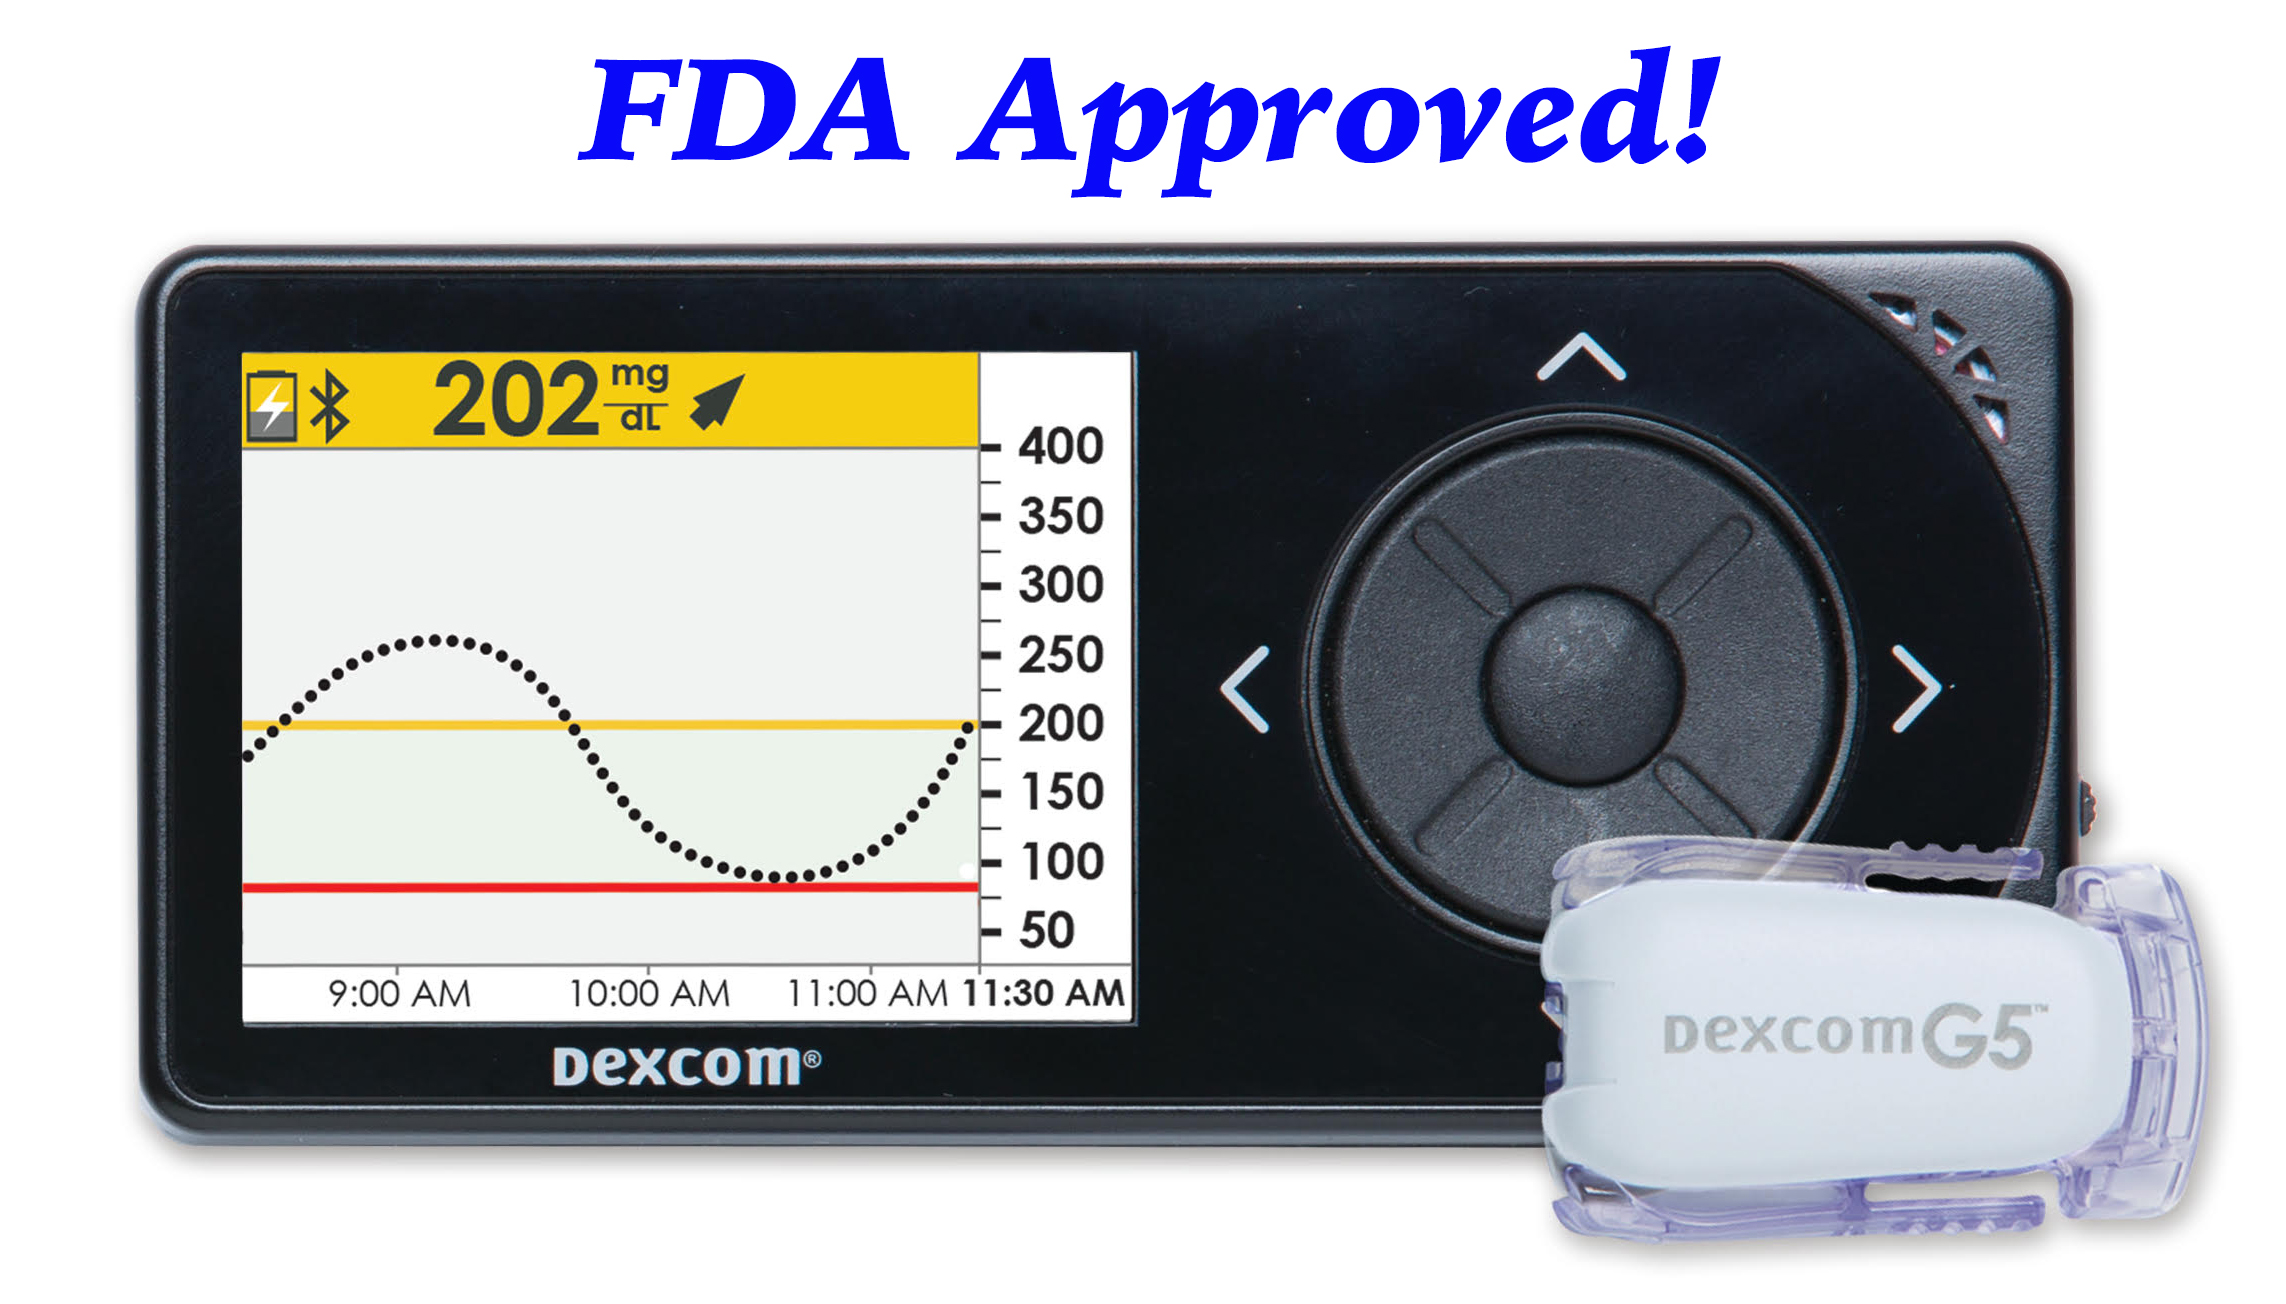 Dexcom G5 Mobile Approved